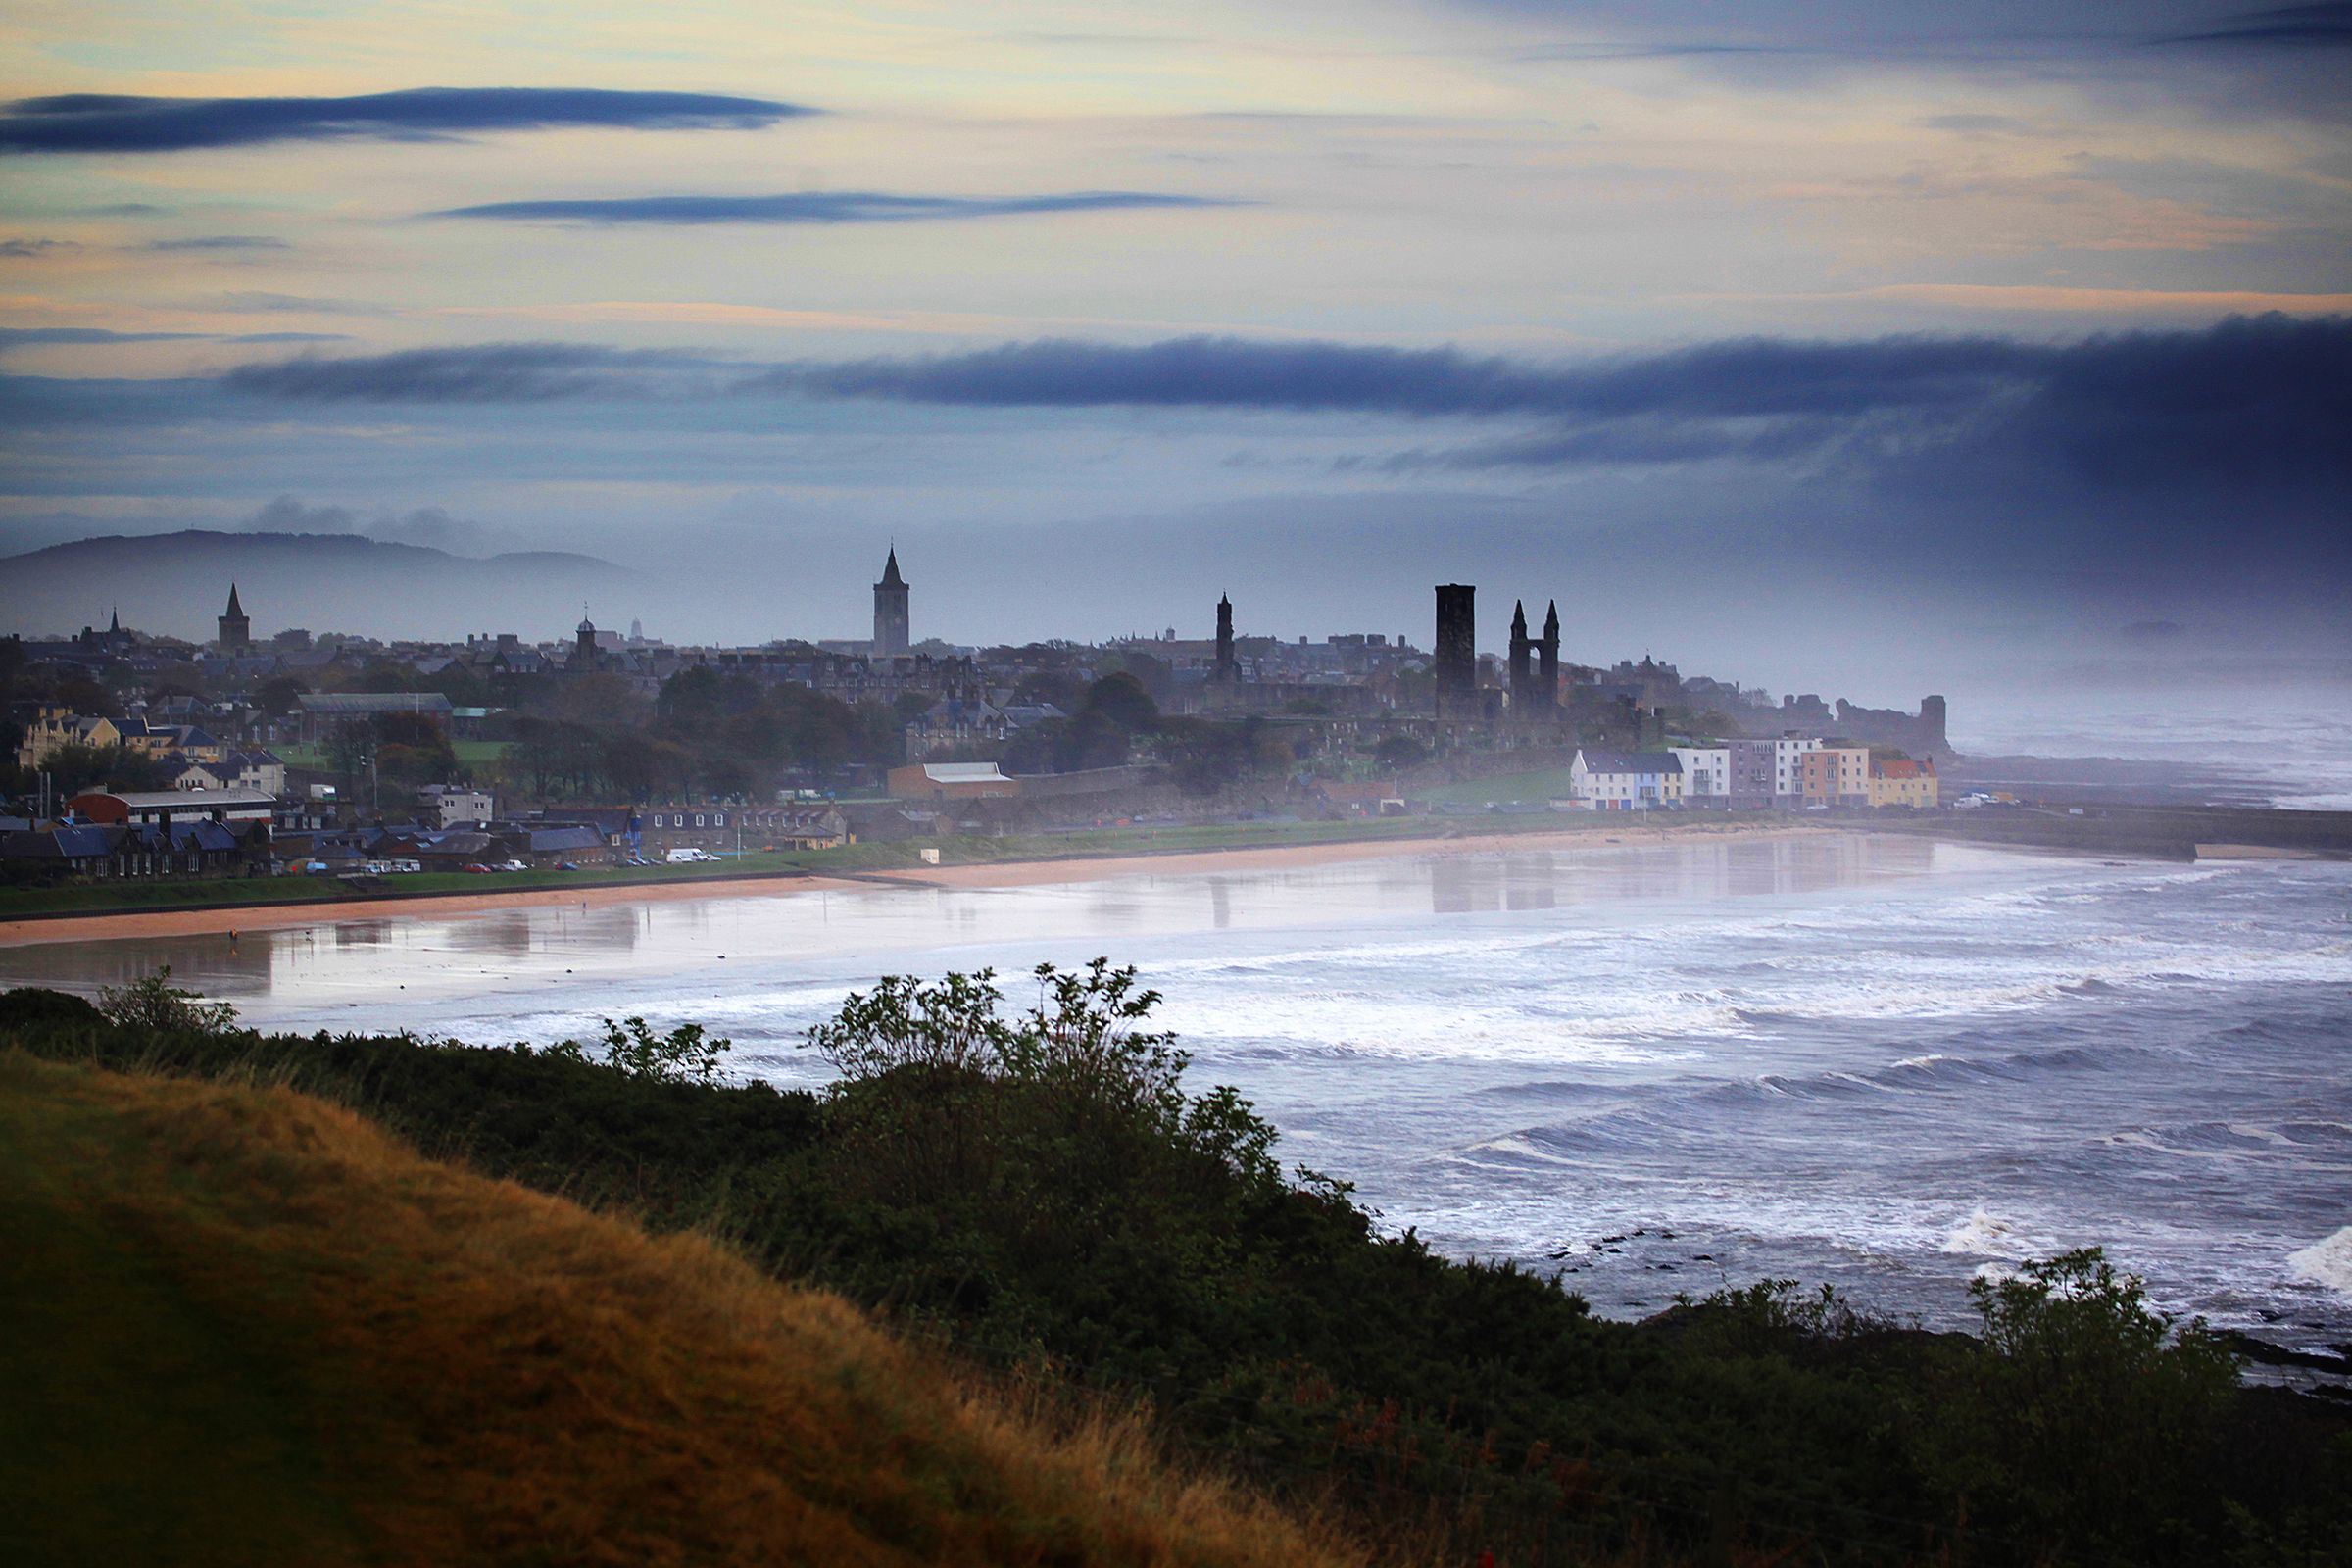 A dramatic shot of the beautiful St Andrews Bay Vacation